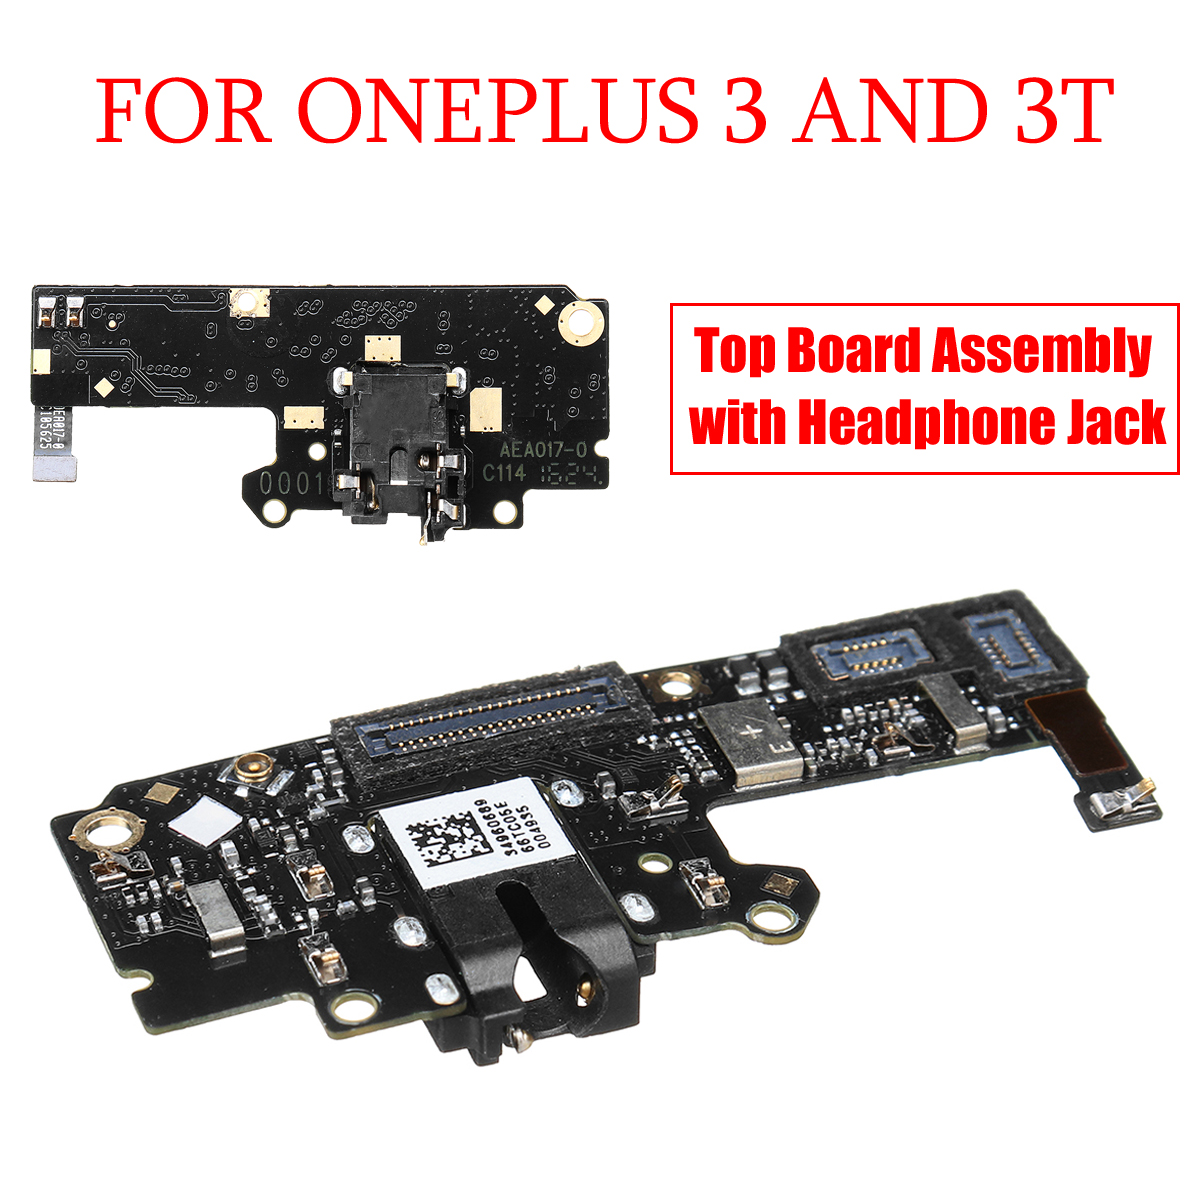 LEORY Top Board With Headphone Jack Replacement Part Assembly For OnePlus 3 Mobilephone Accessories